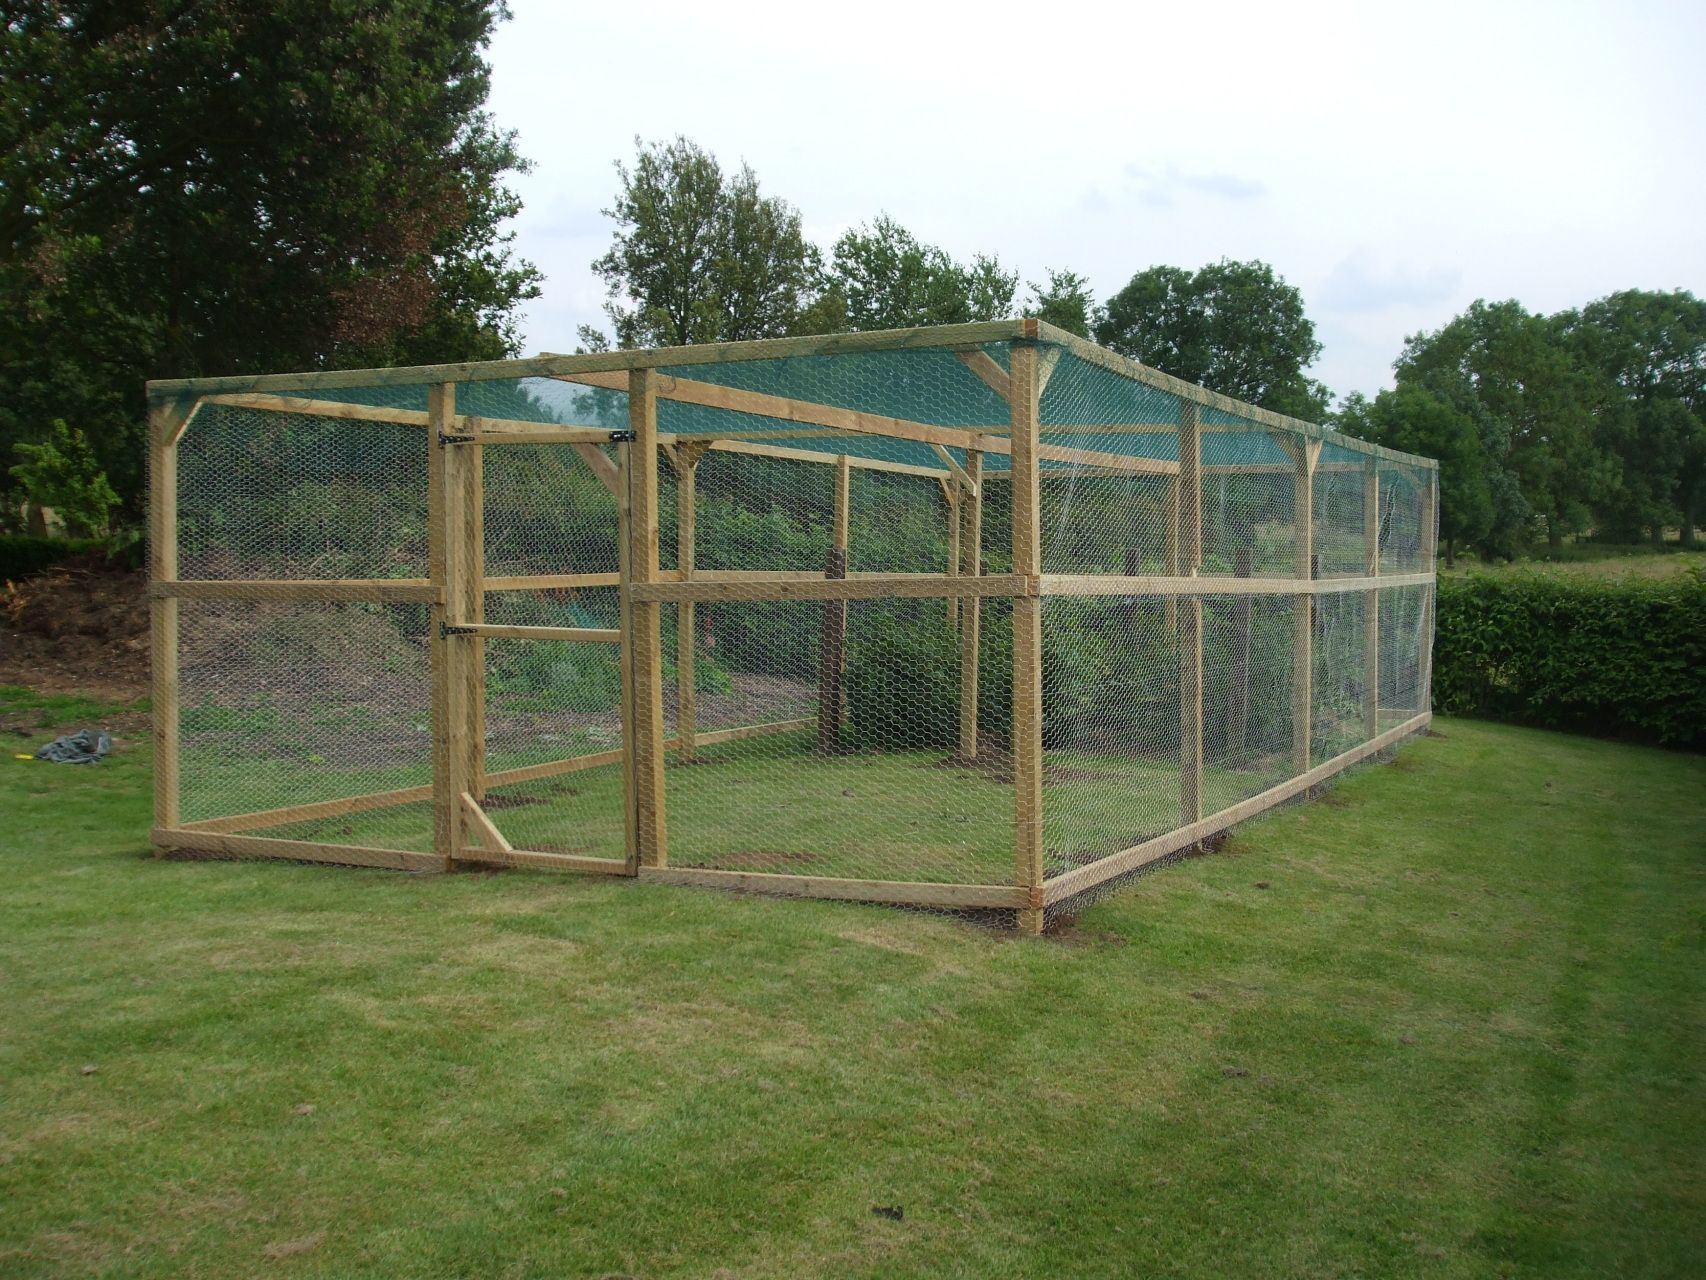 Walk In Garden Box: These Are The Best Value For Money Timber Walk In Fruit